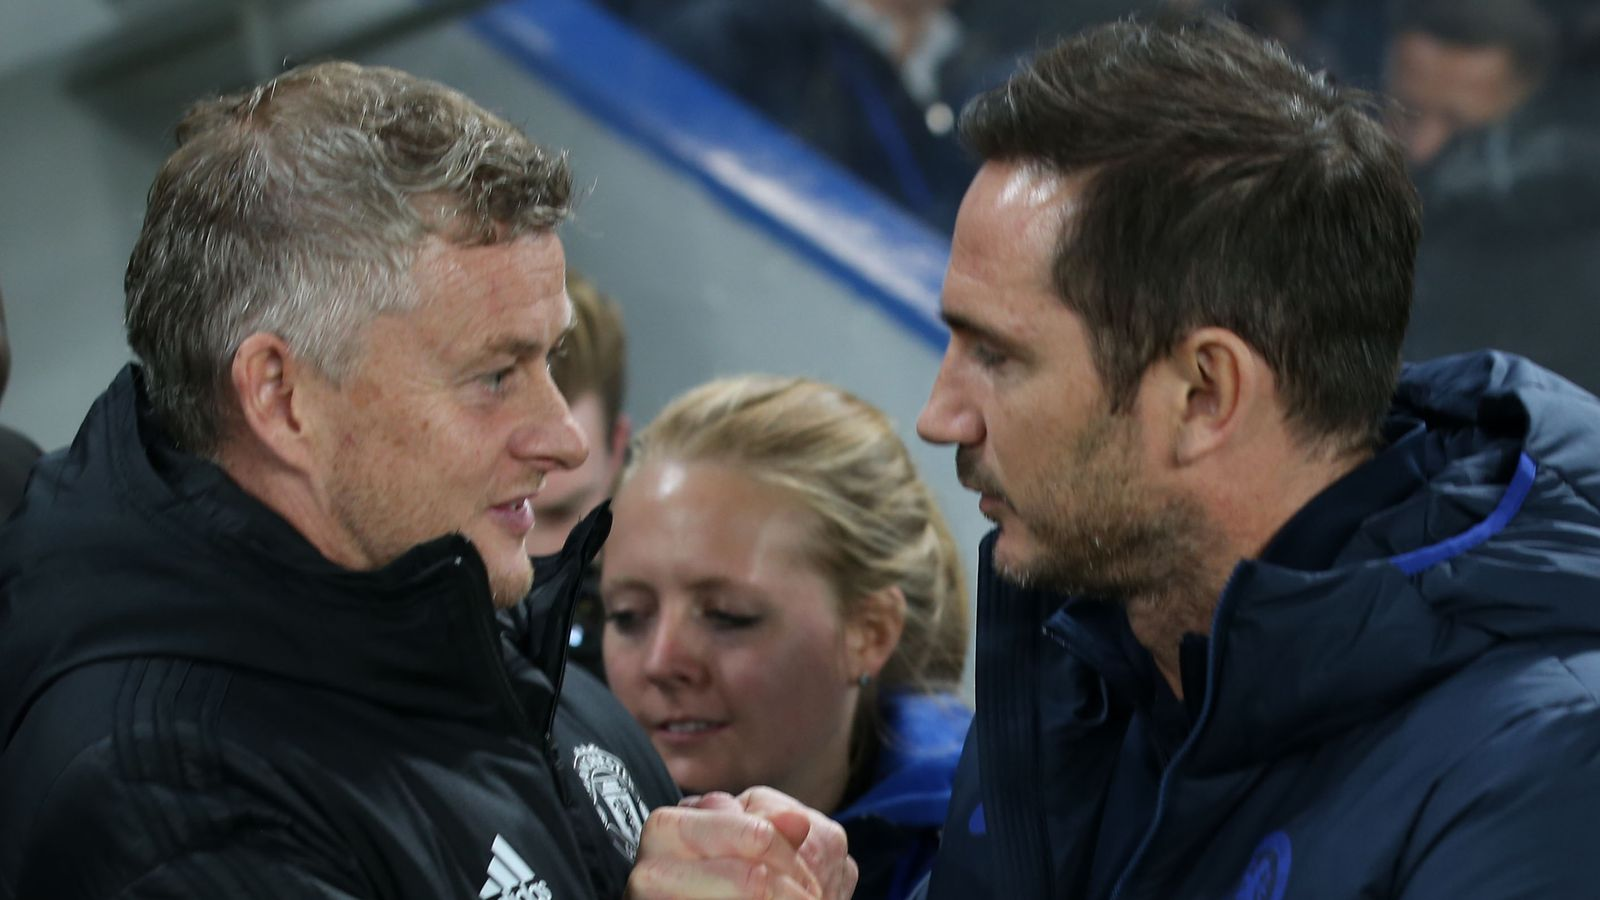 Chelsea vs Man Utd: Top-four race will affect Frank Lampard Ole Gunnar Solskjaer's futures, says Jamie Carragher